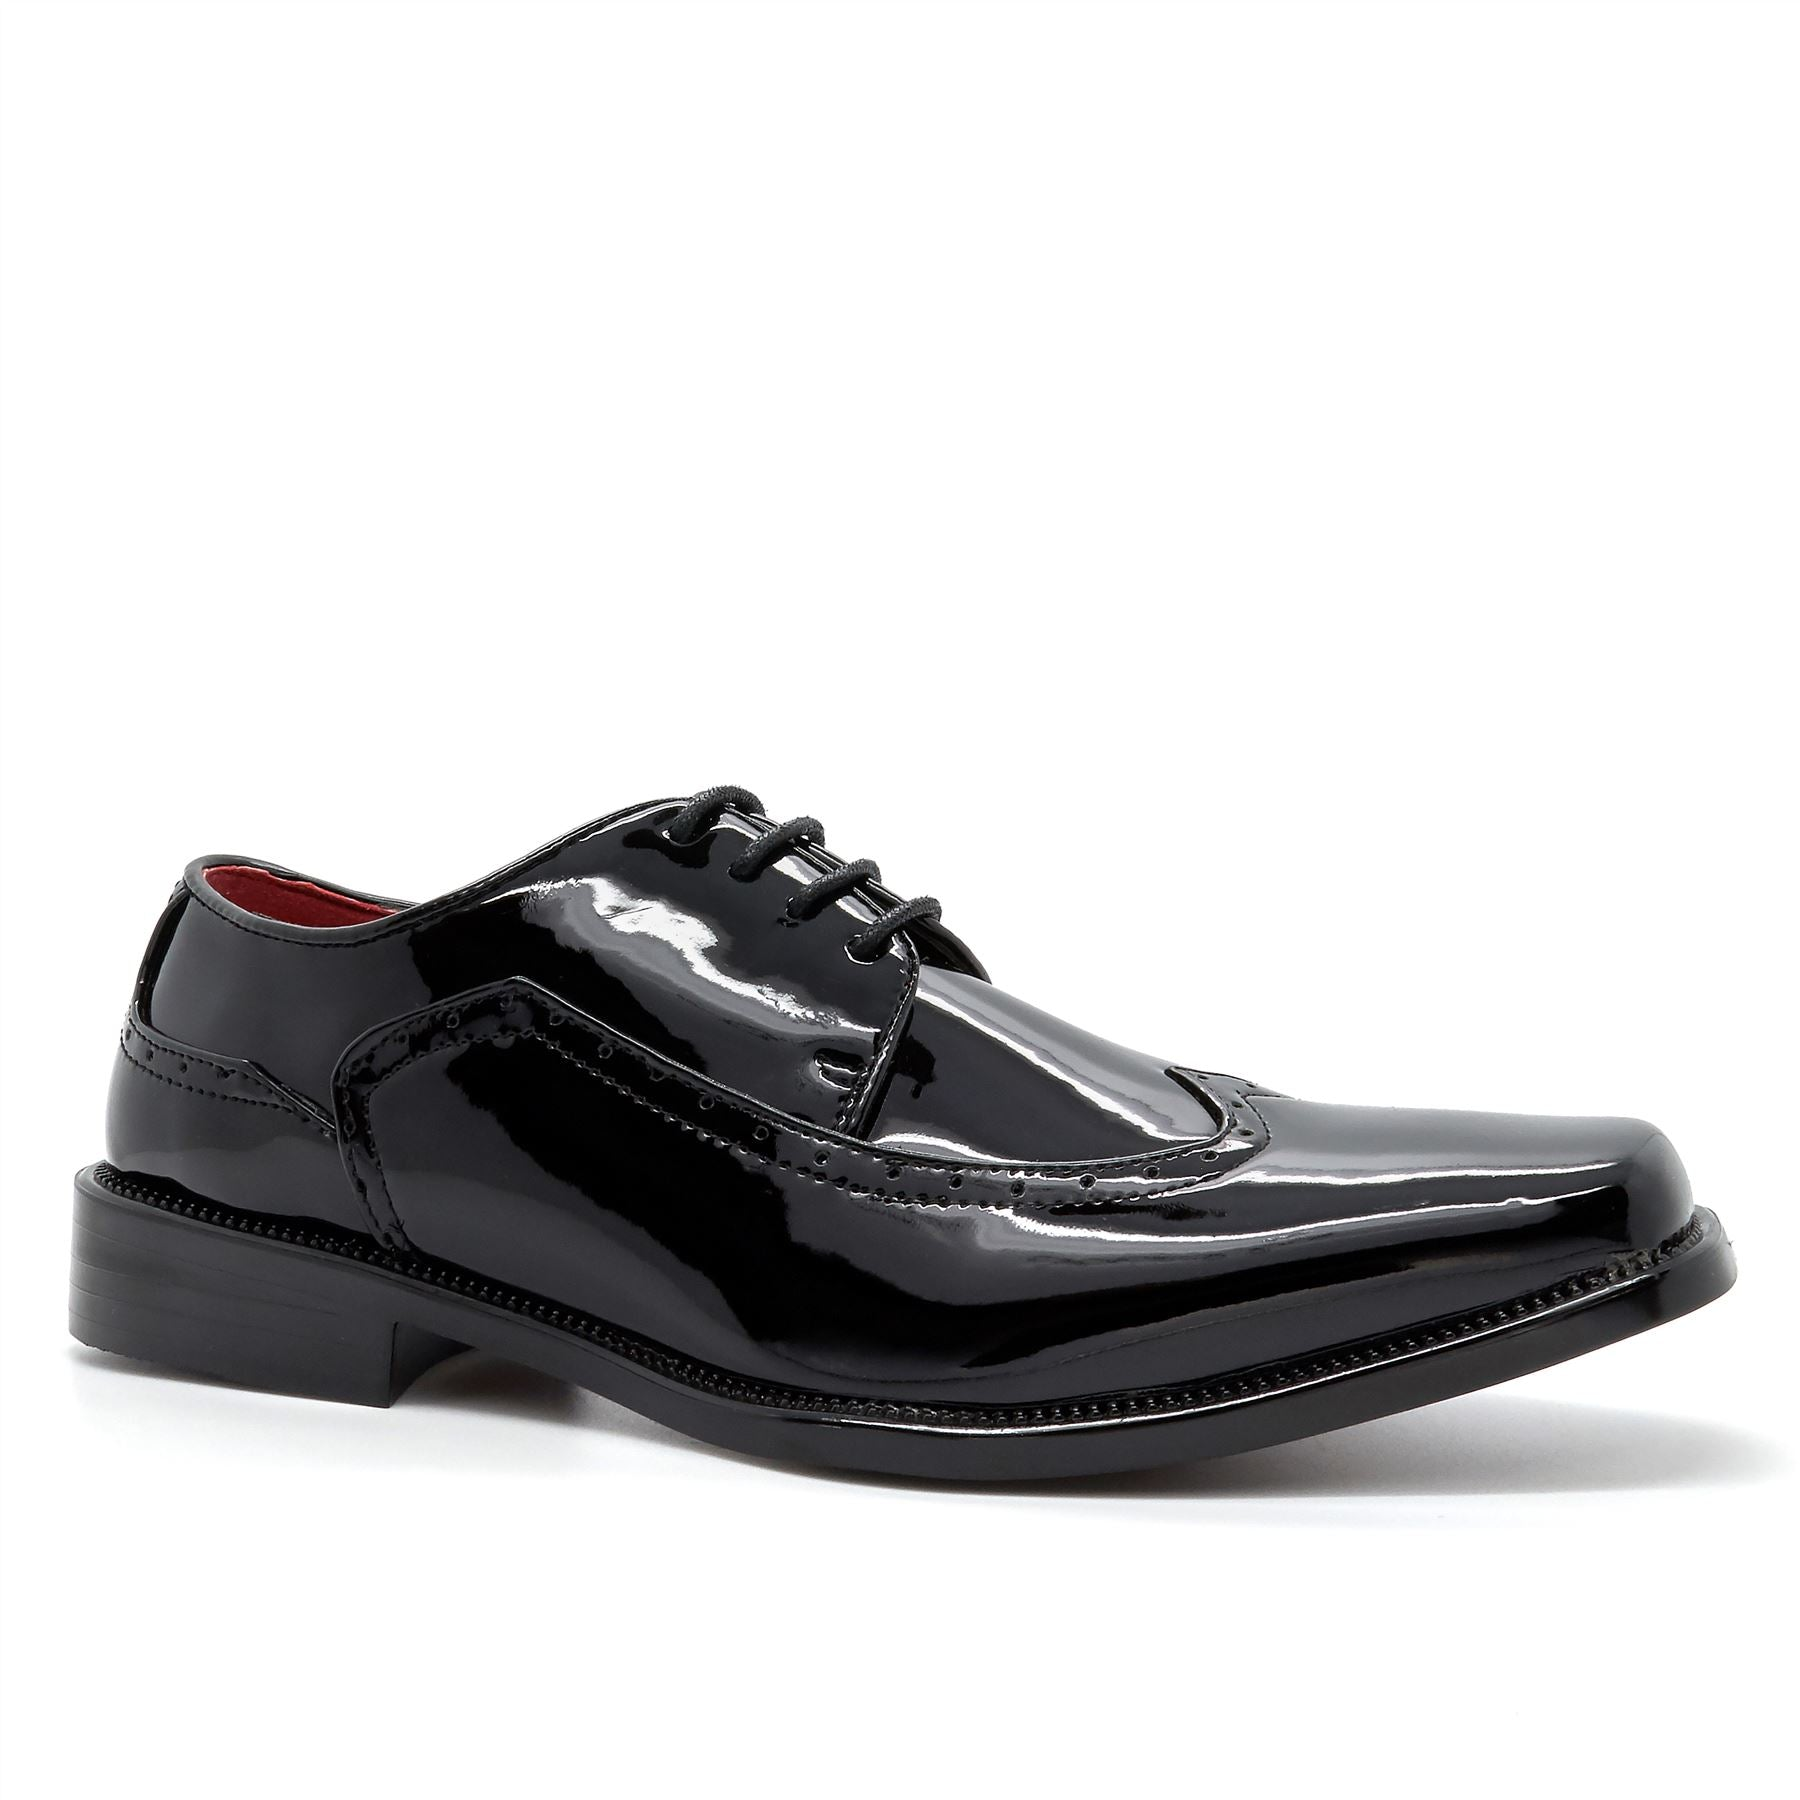 Black Lace Up Wingtip Derby Shoes